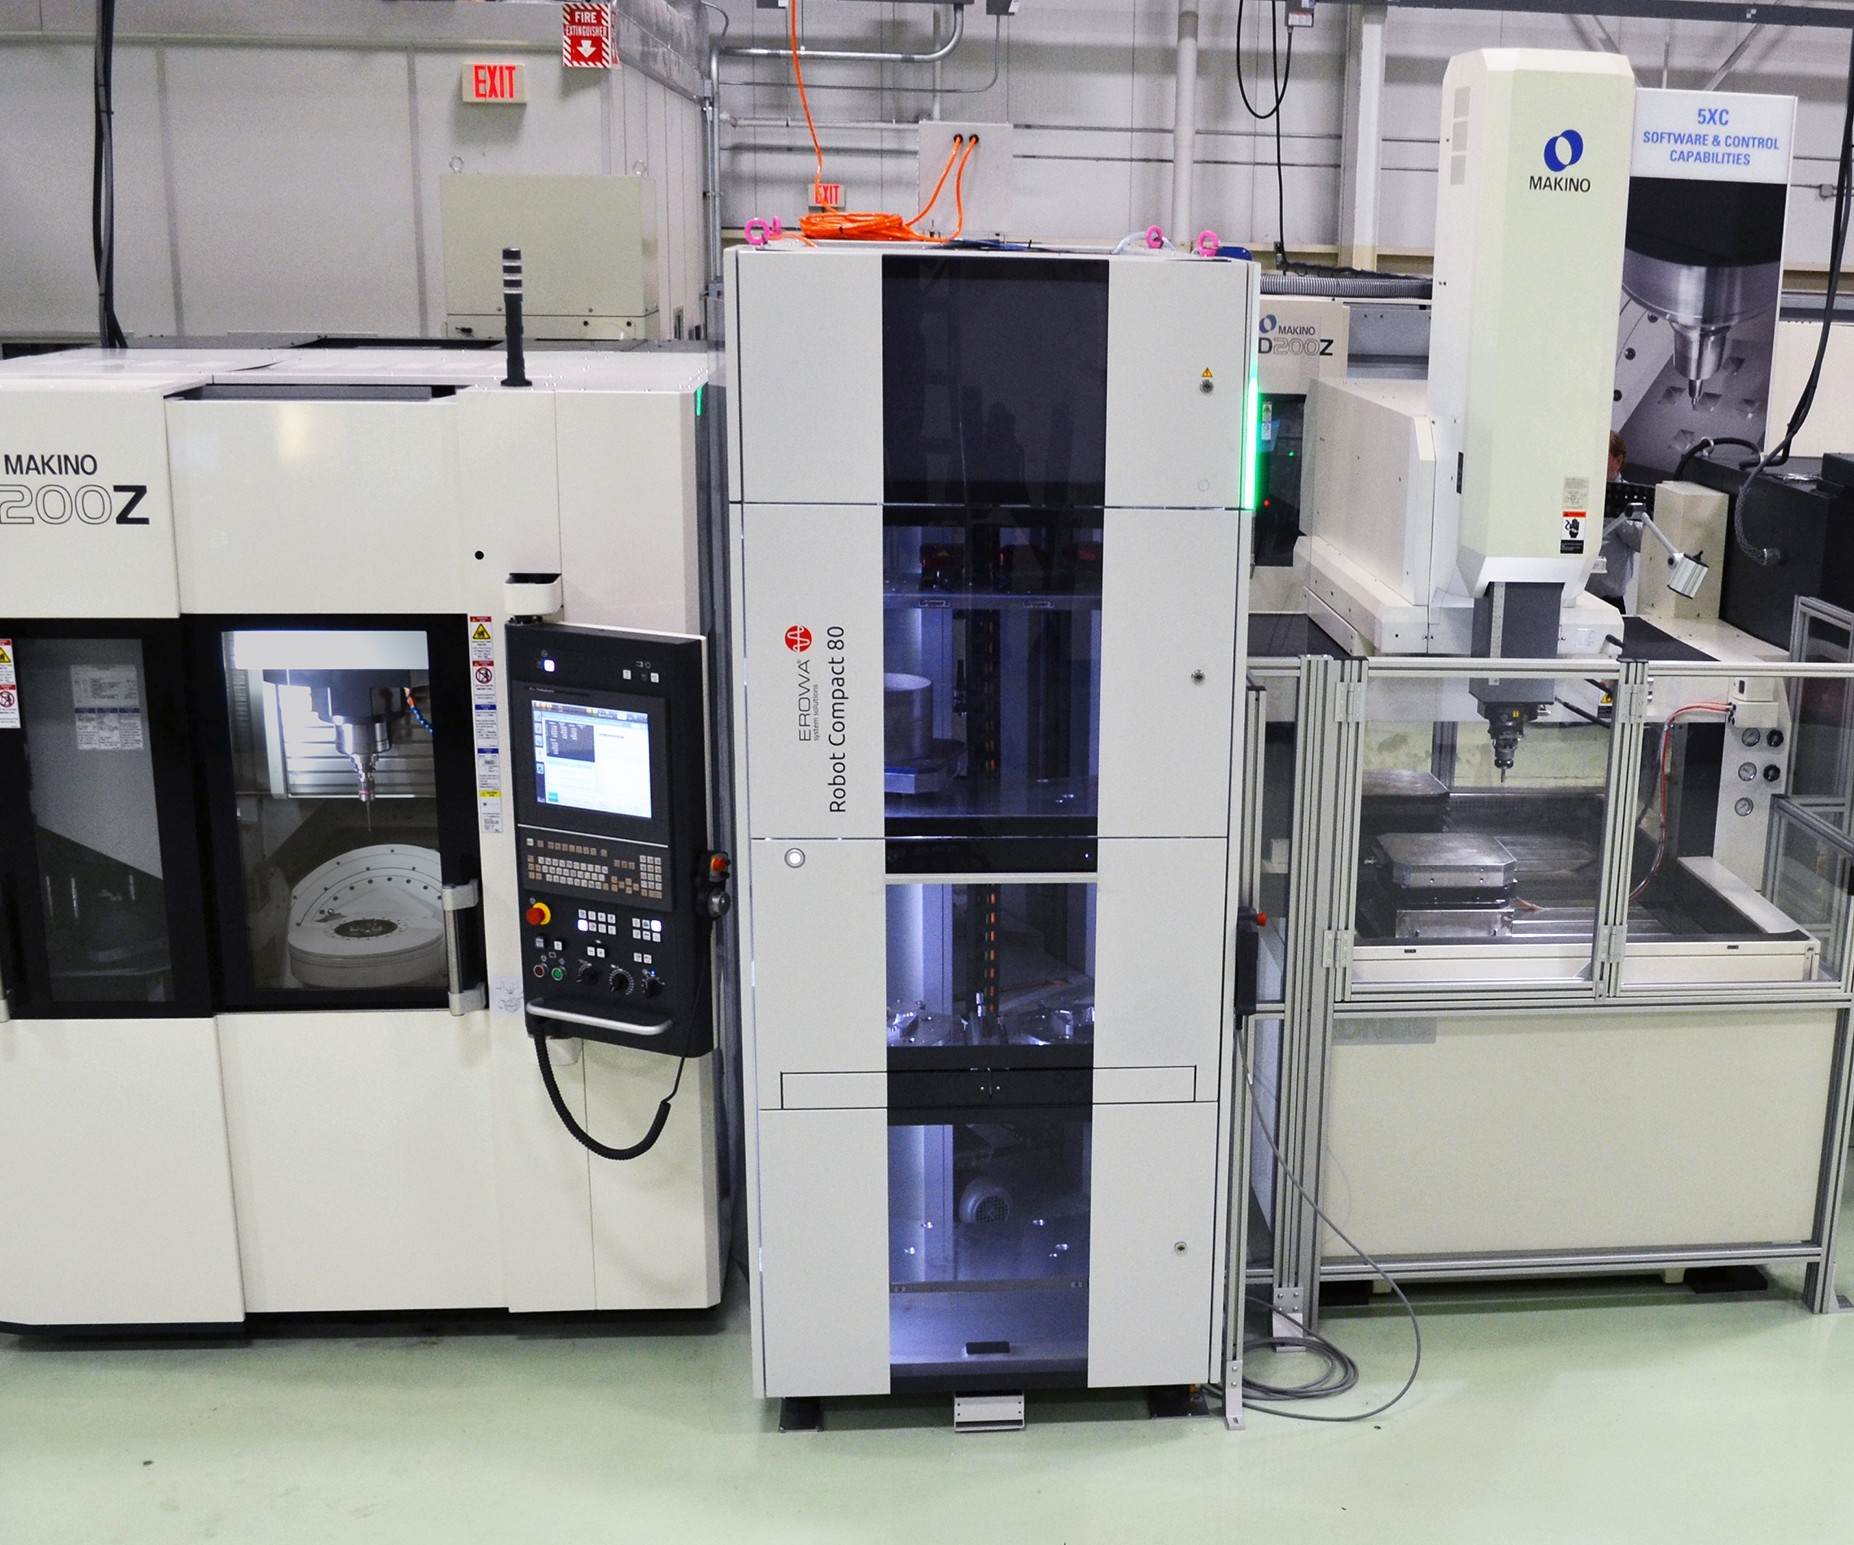 Makino's D200Z-graphite 5XC vertical machining center integrated with an automated cell that uses a Makino EDNC6 sinker EDM machine and an EROWA ERC80 robot.